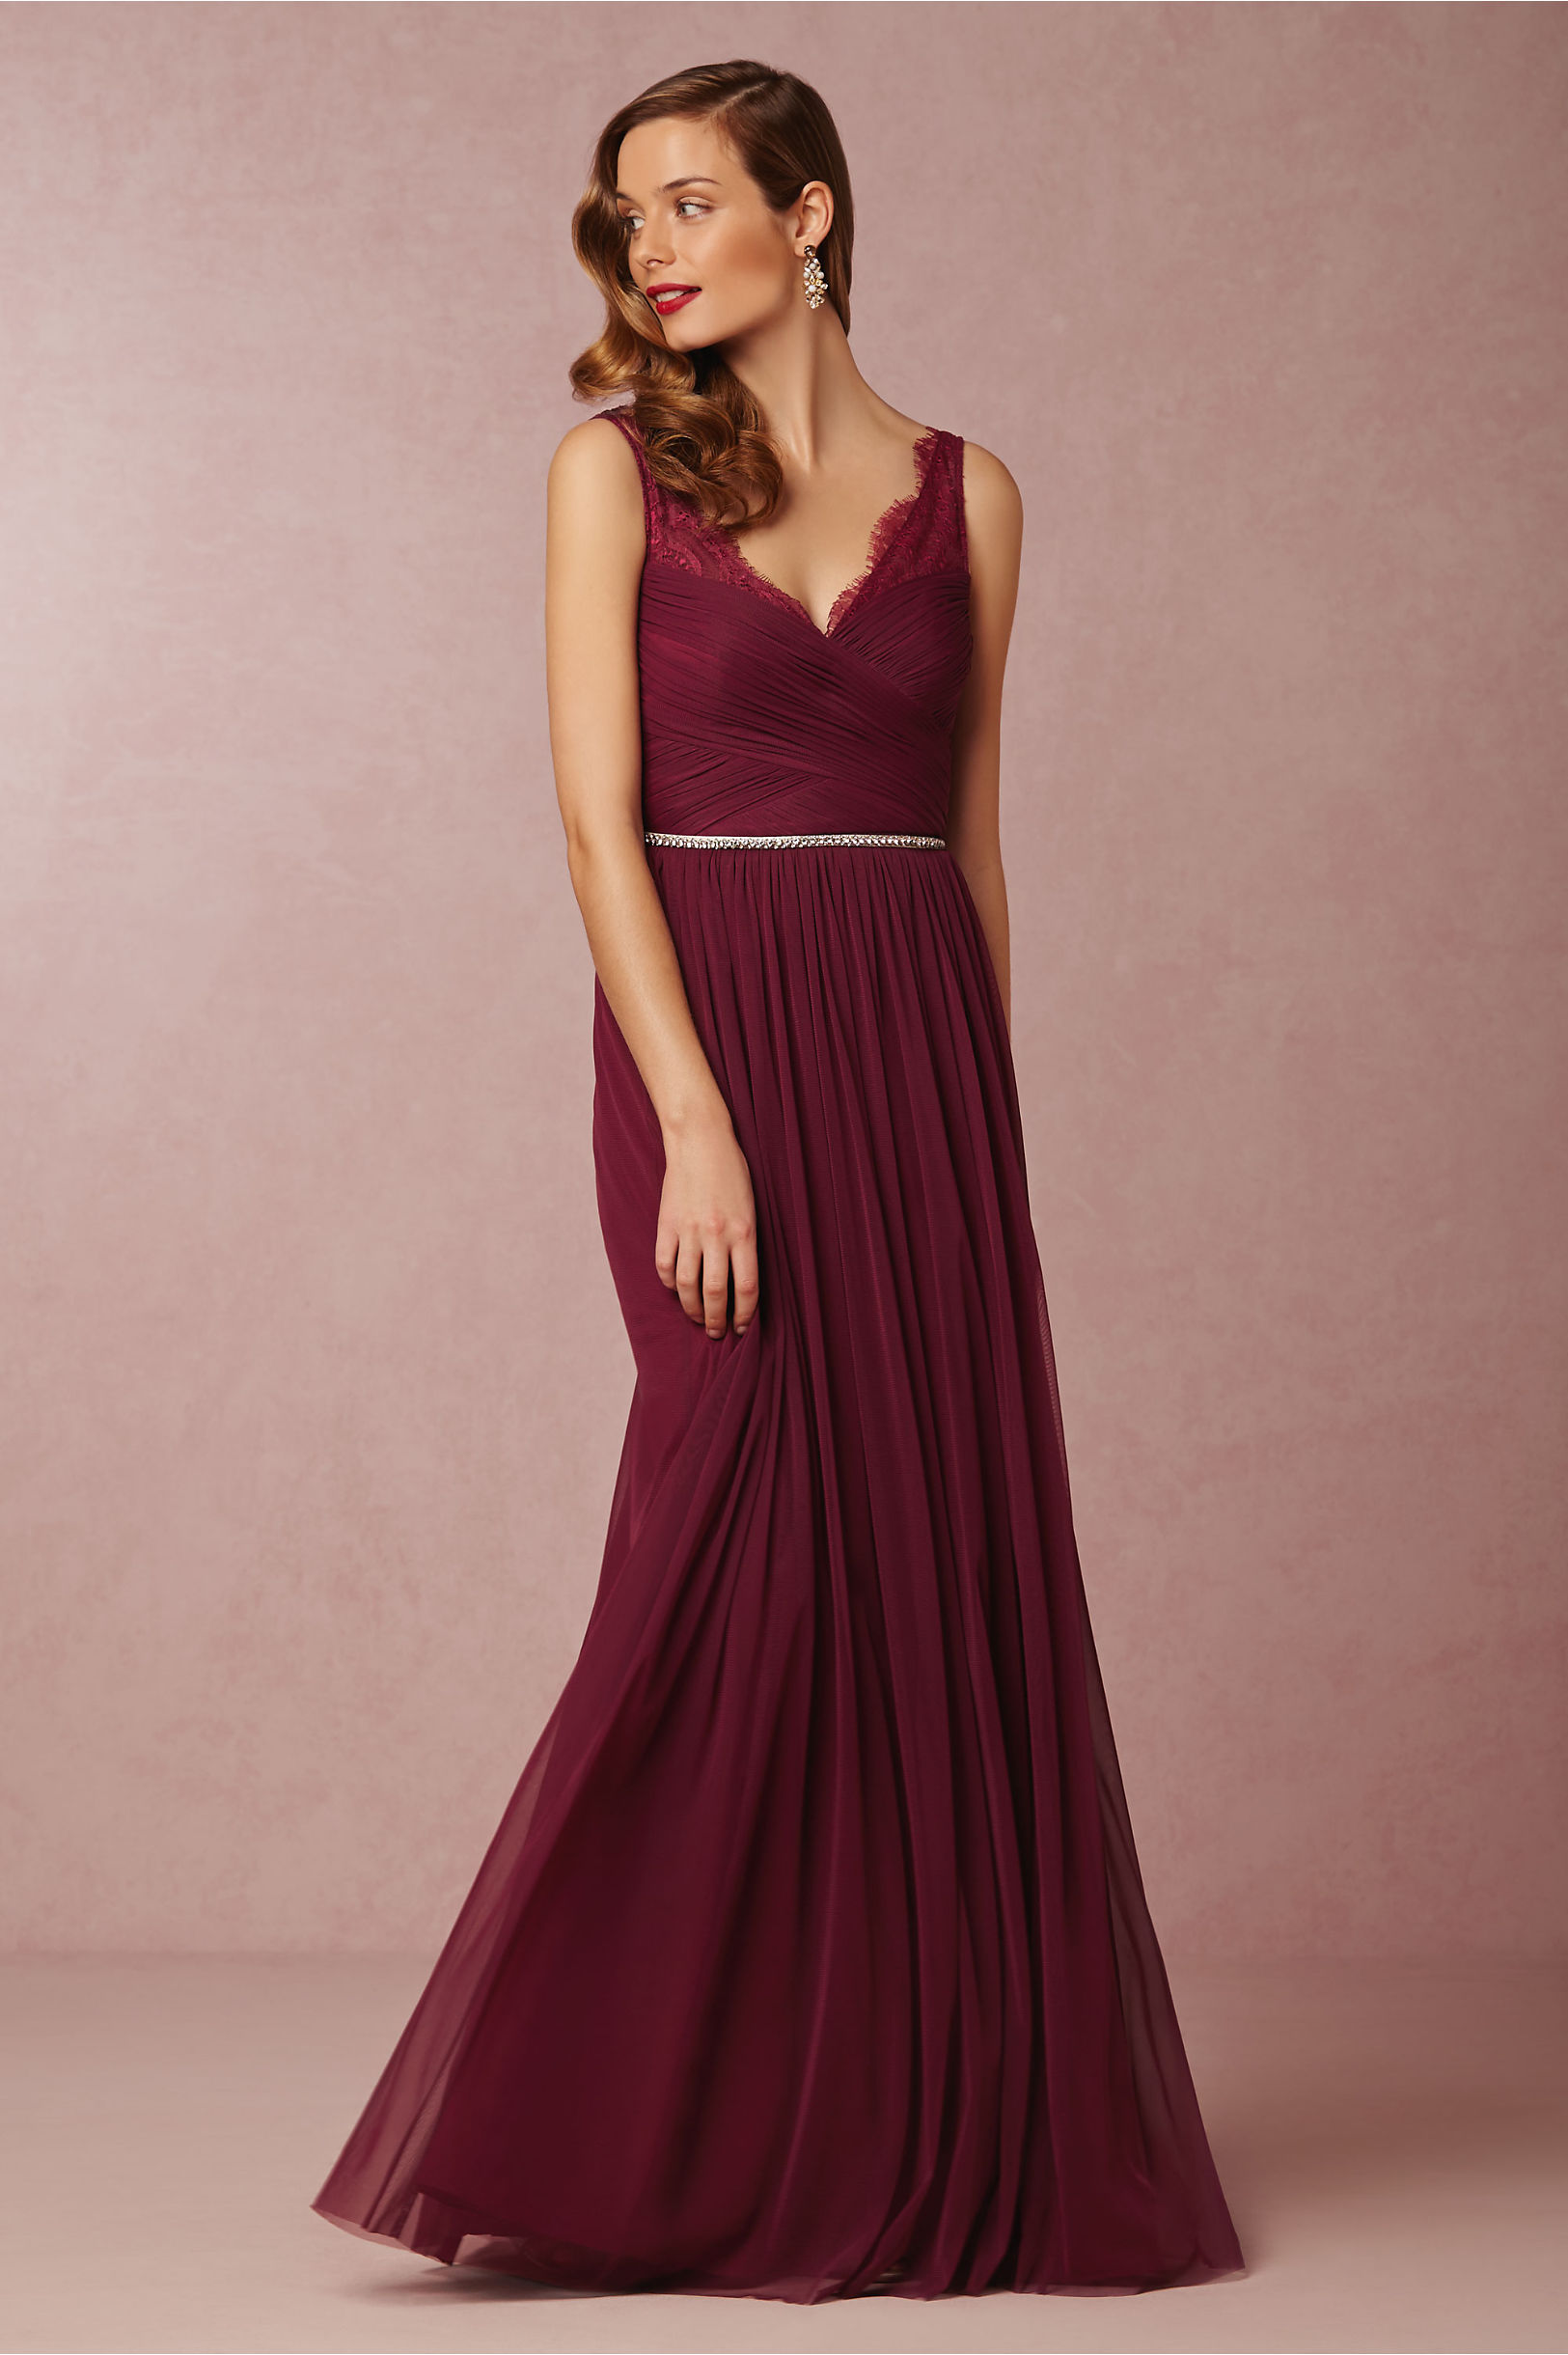 Black Cherry Fleur Dress Bhldn